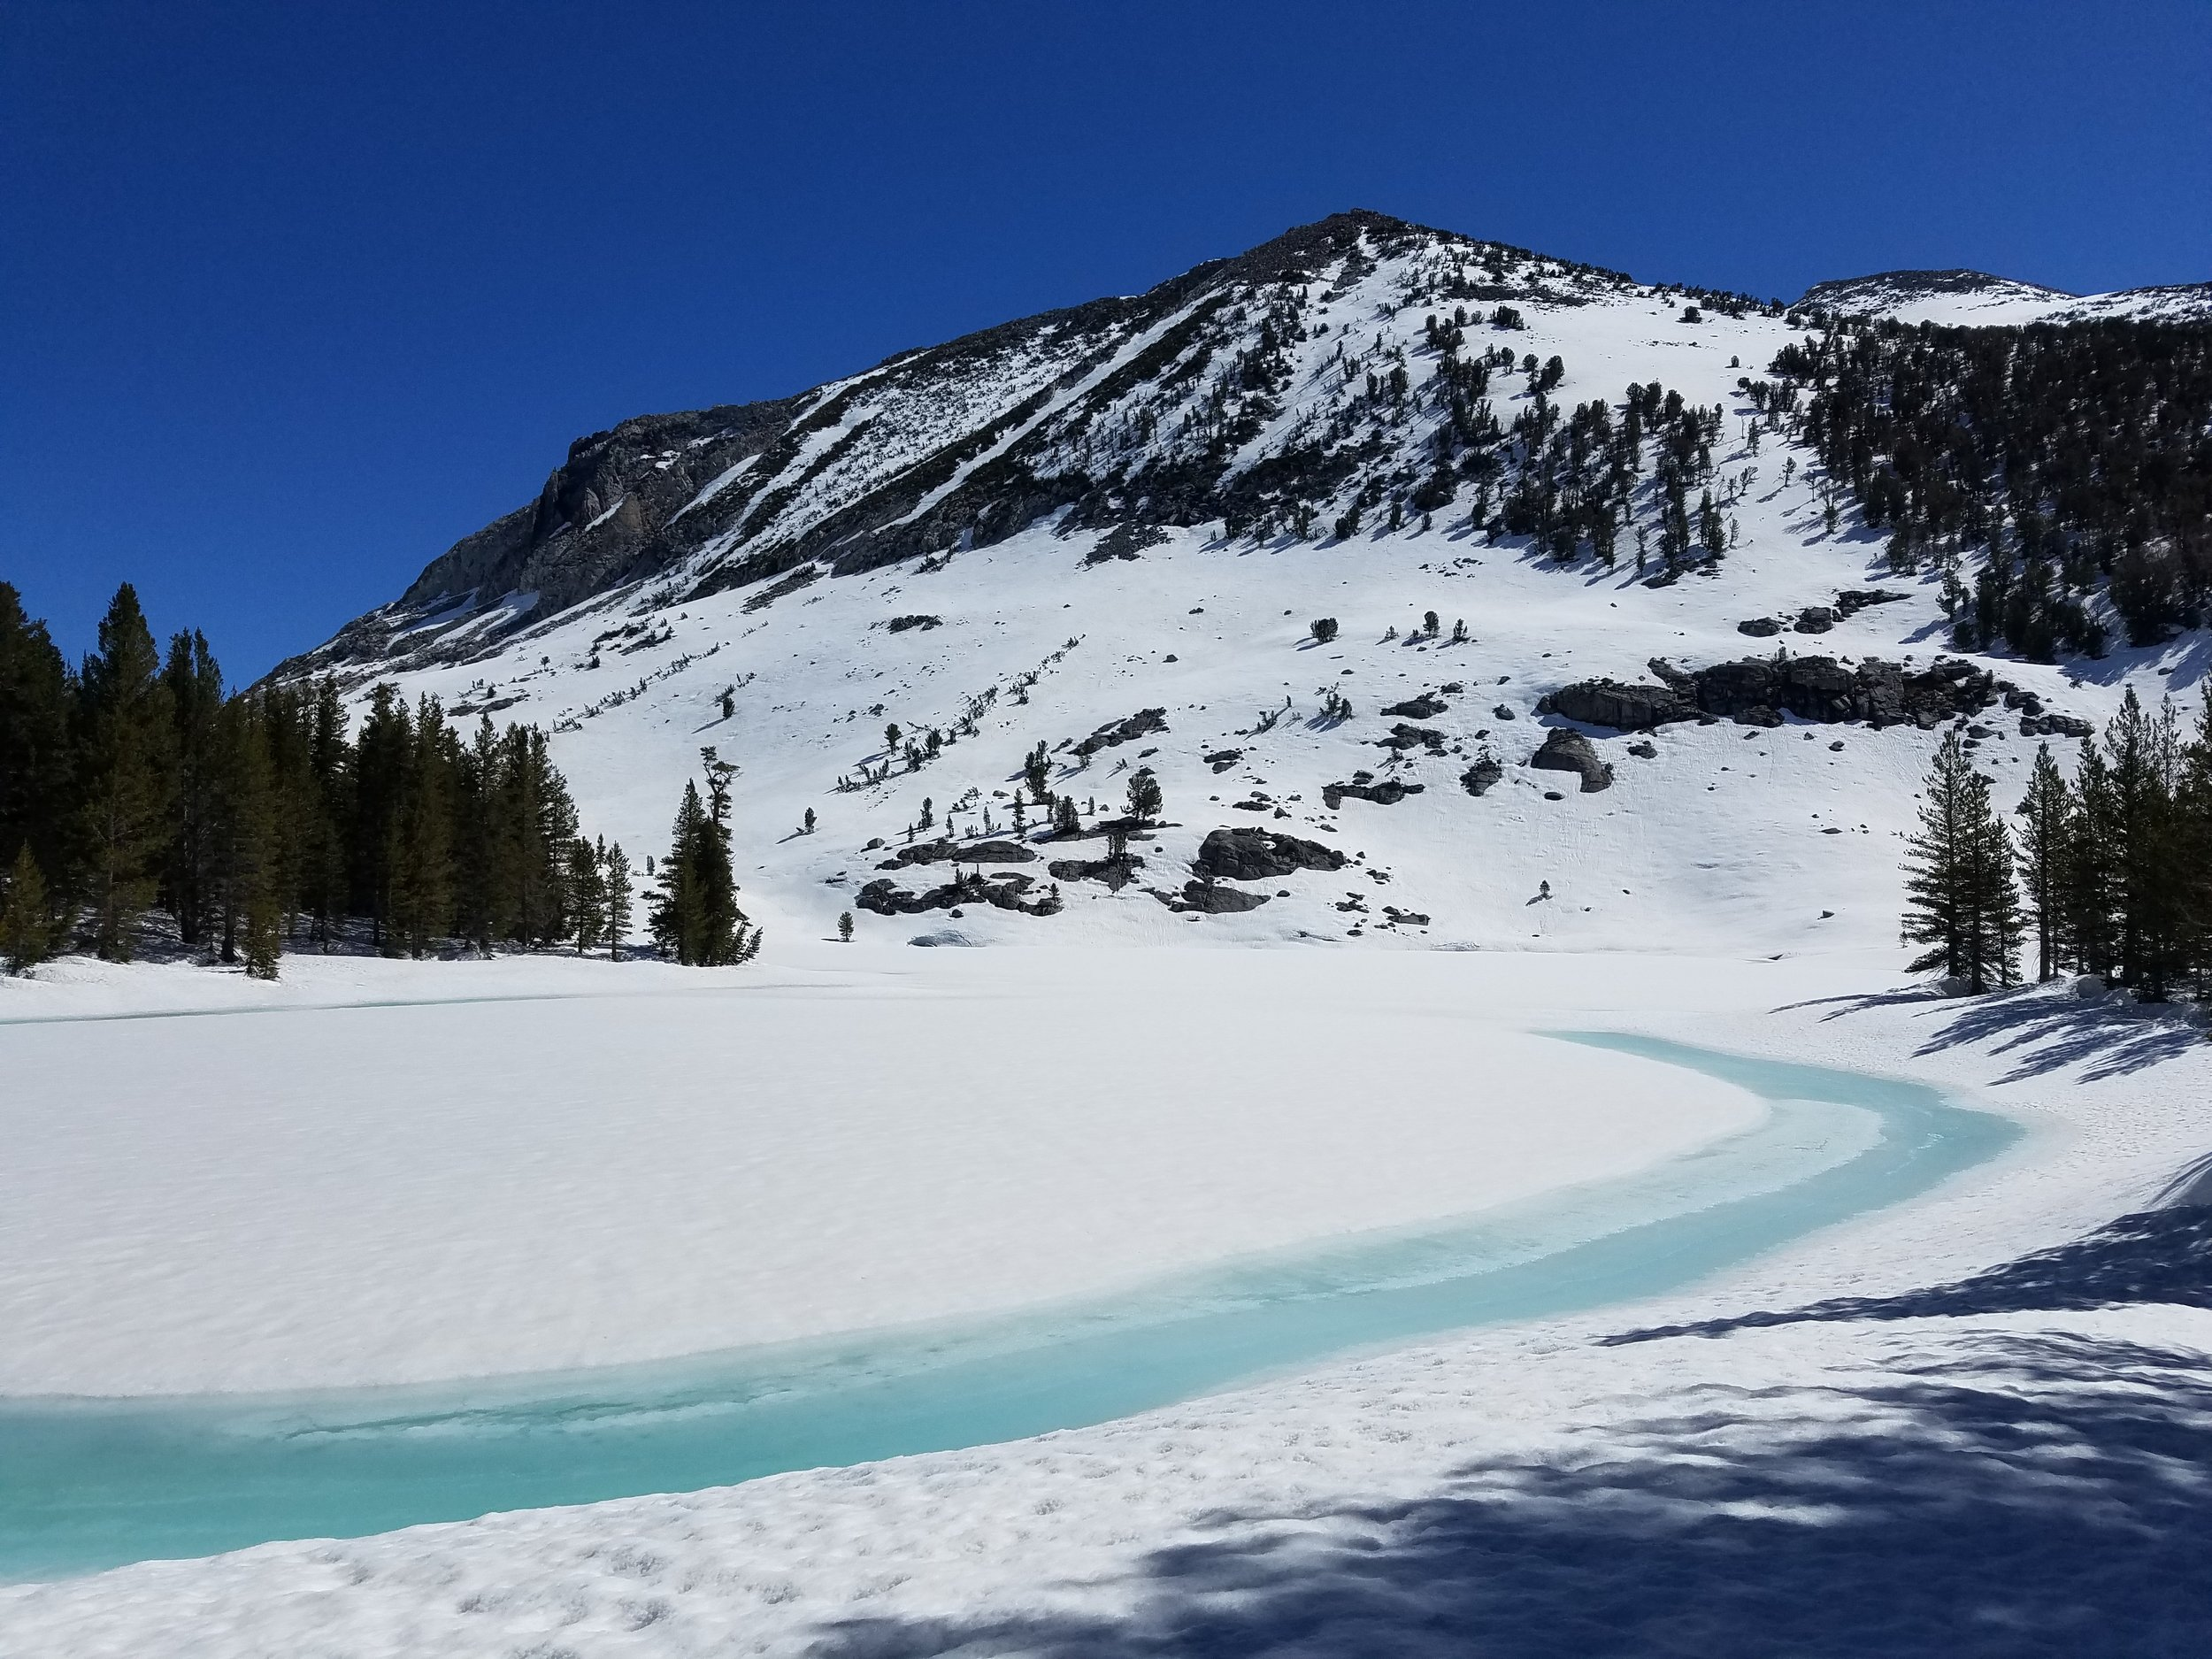 Our first glimpse of Sallie Keyes Lakes.